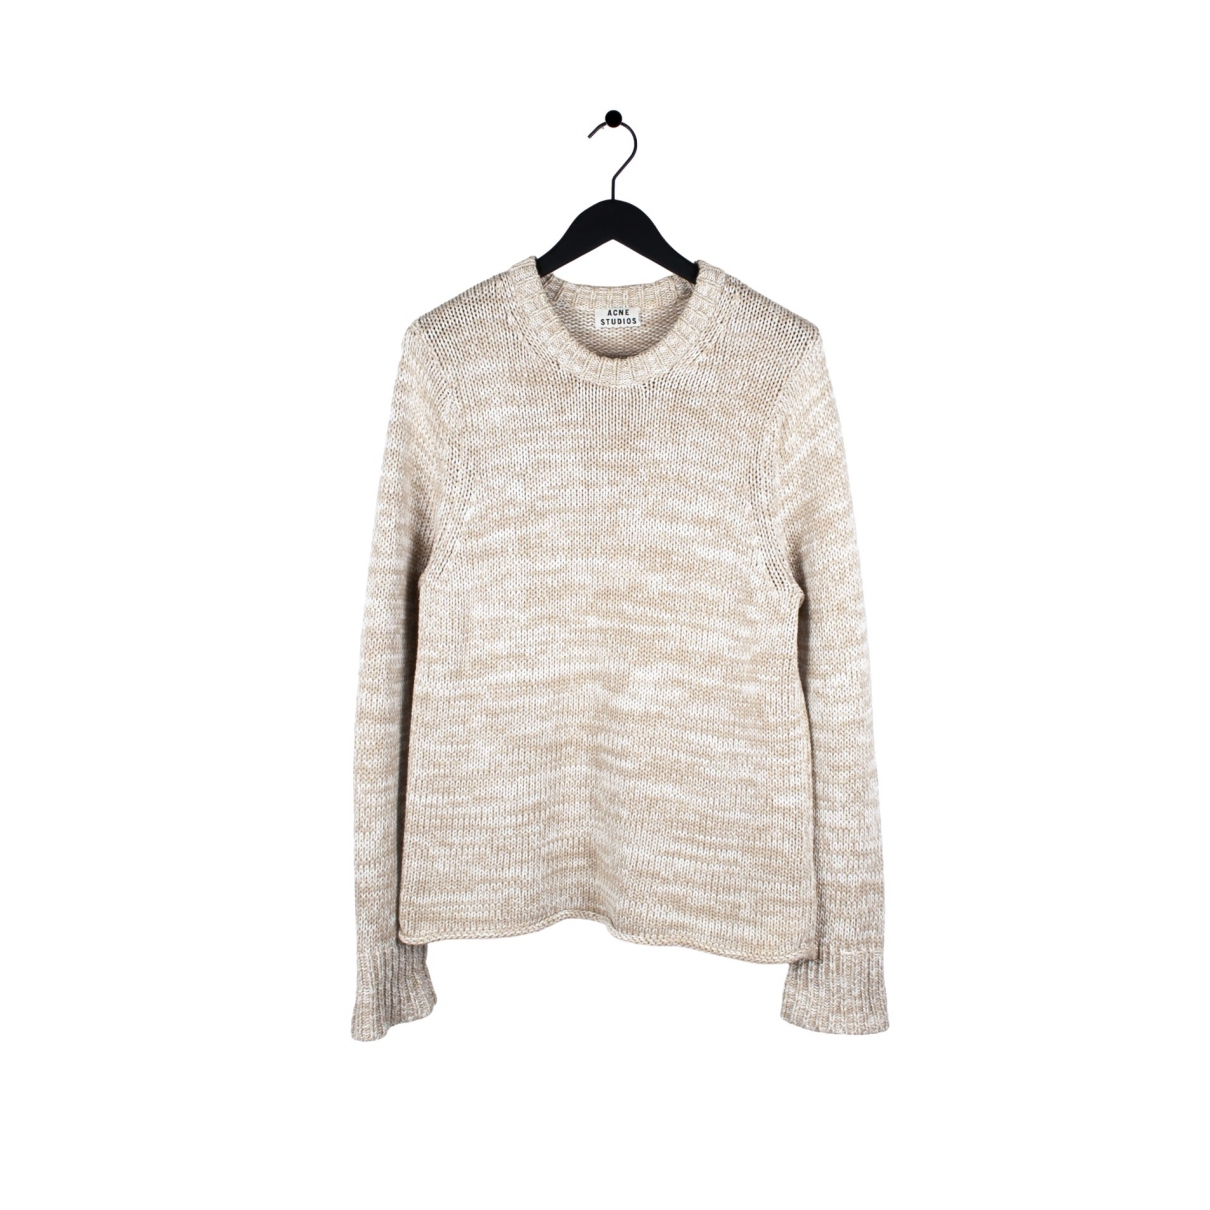 Acne Studios \N Beige Cotton Knitwear & Sweatshirts for Men M International